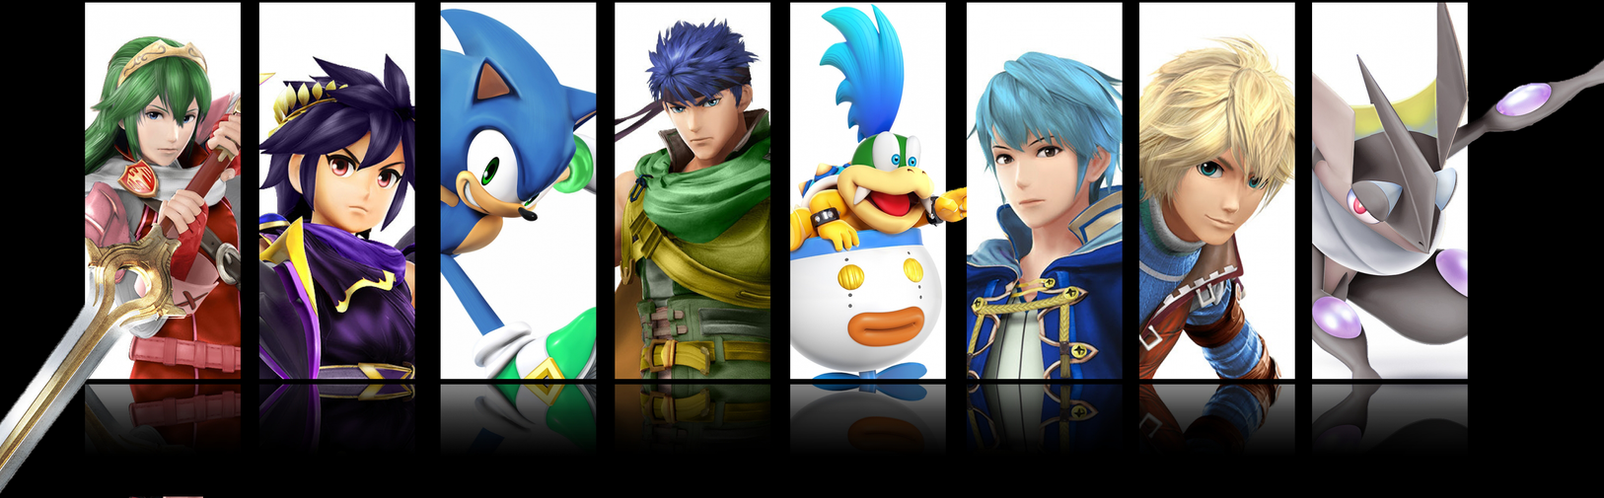 My smash roster 2 by thepontusandersson